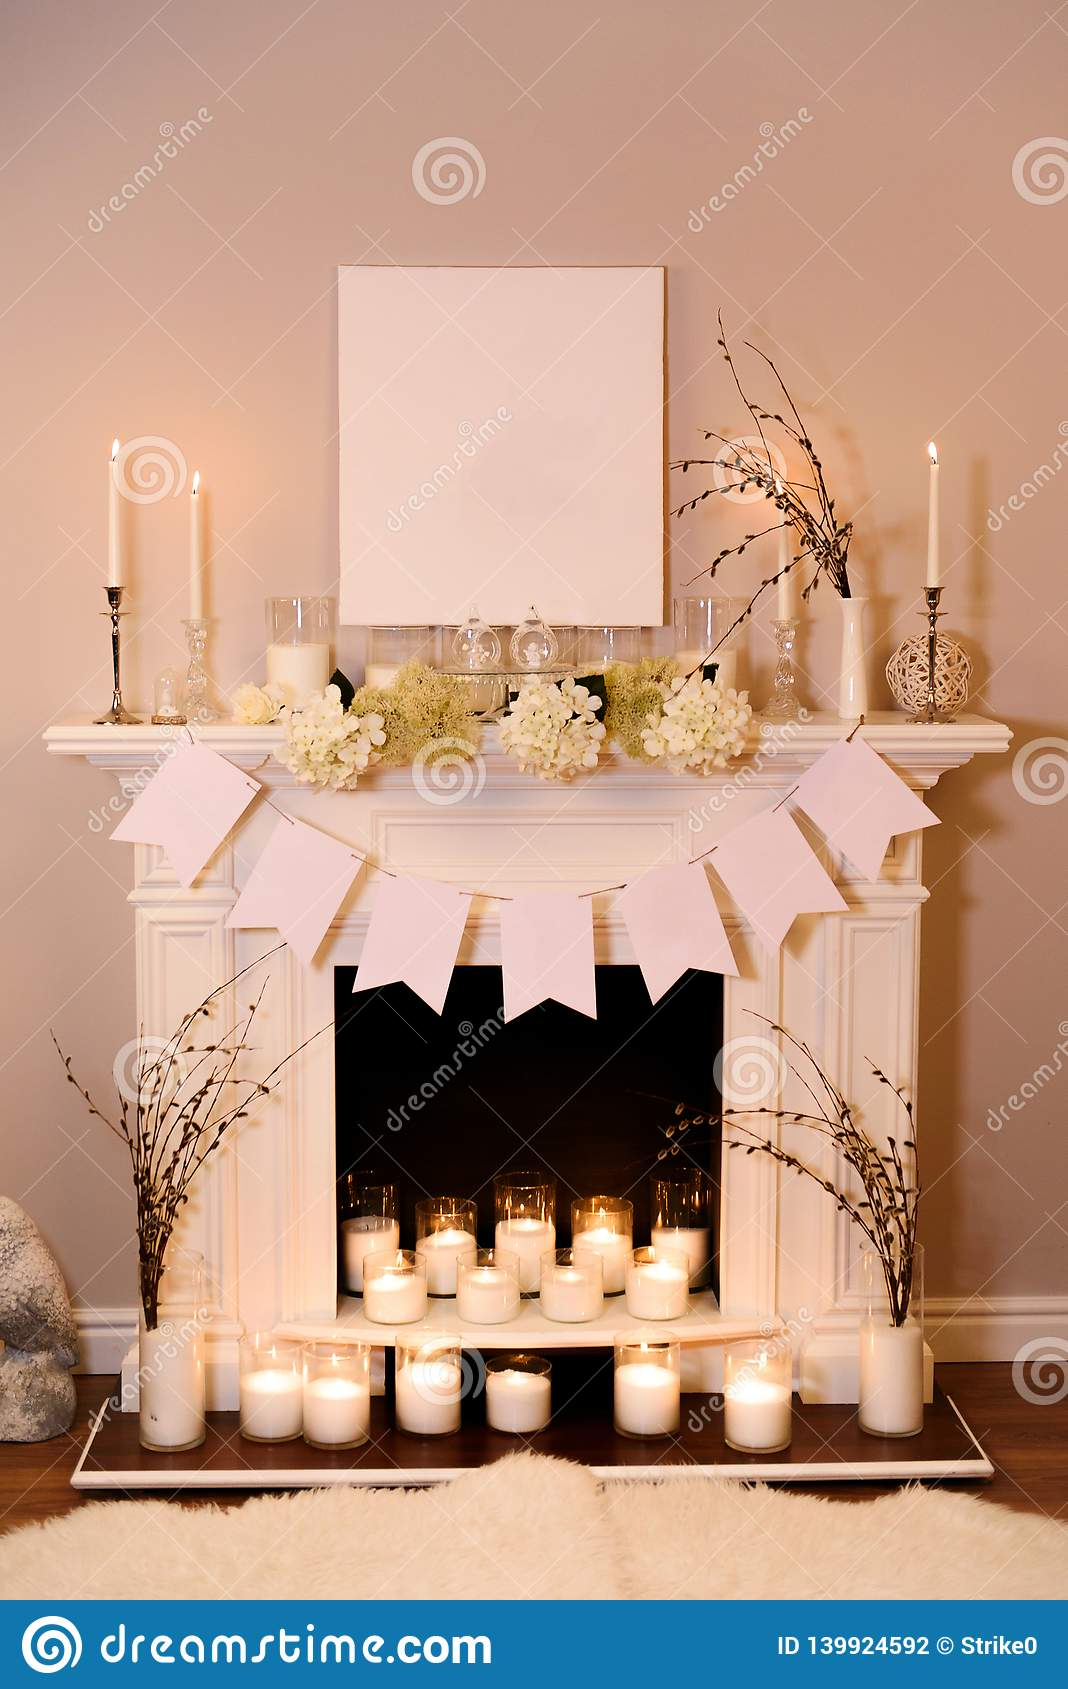 Fireplace Decorated For Easter Stock Photo Image Of Beautiful